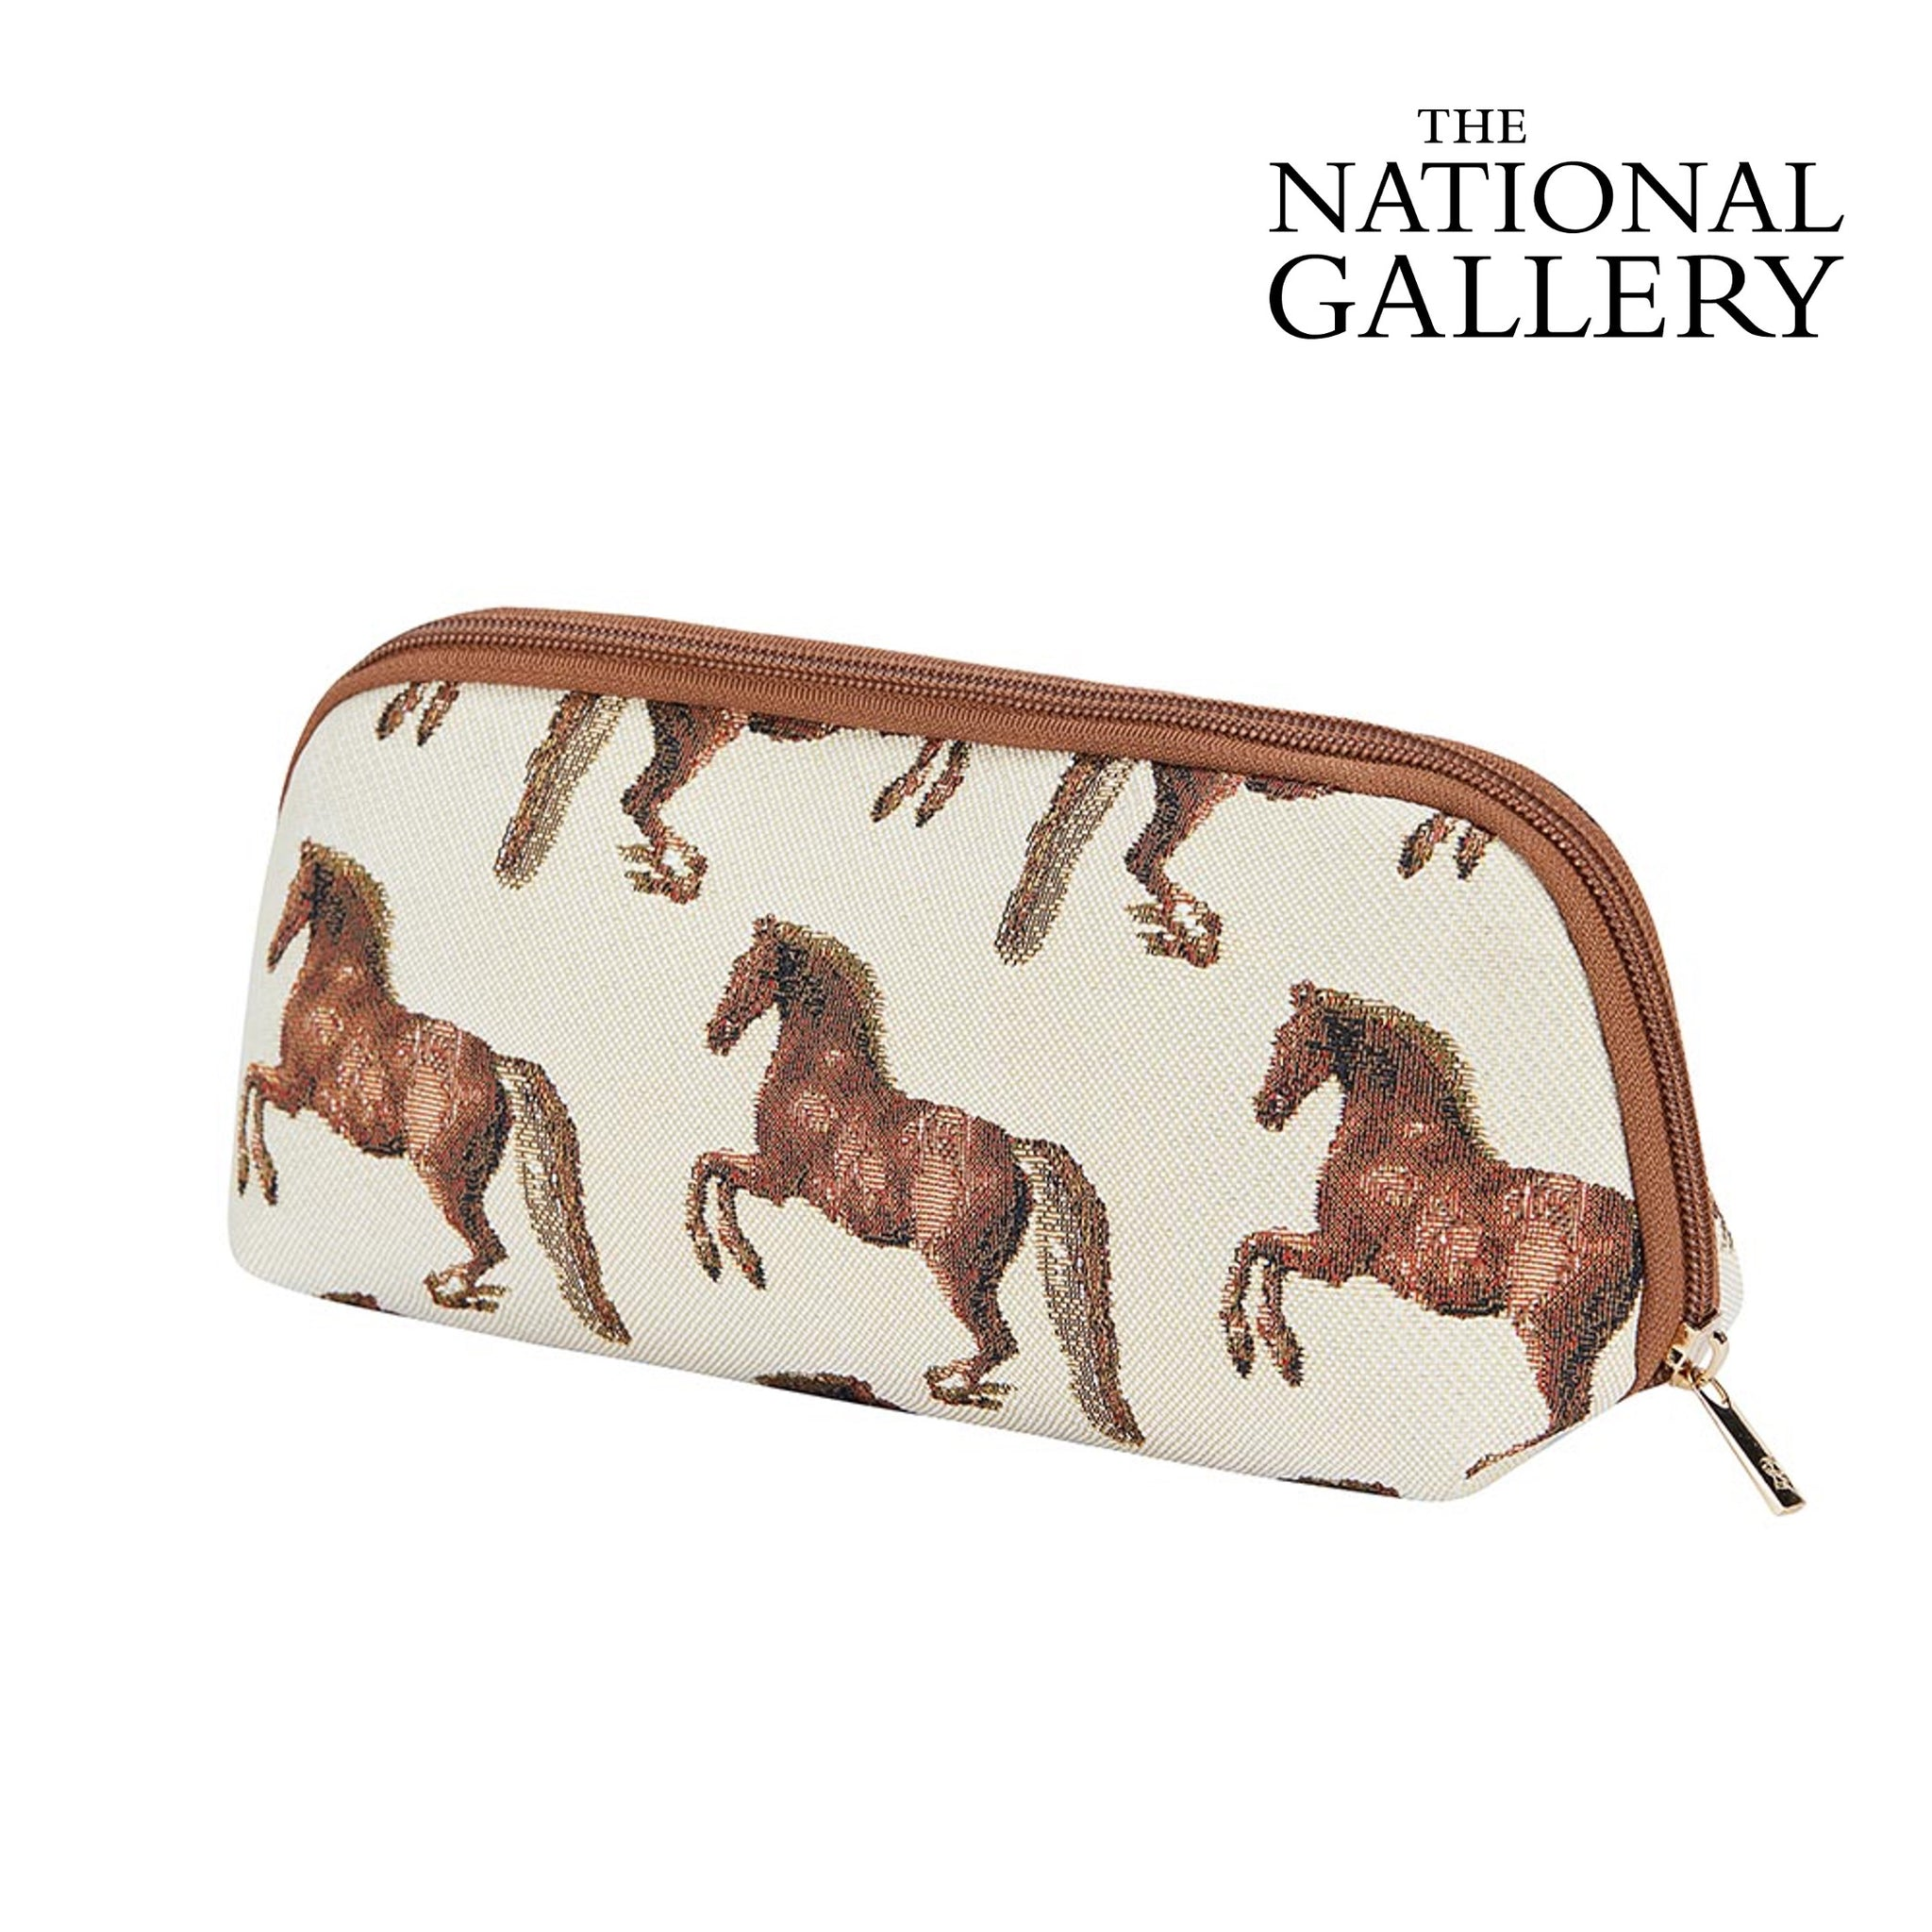 2021 S/S (New Arrival) Whistle Jacket Makeup Brush Bag | Horse Cosmetic Pouch | BRUBG-WHISTLE